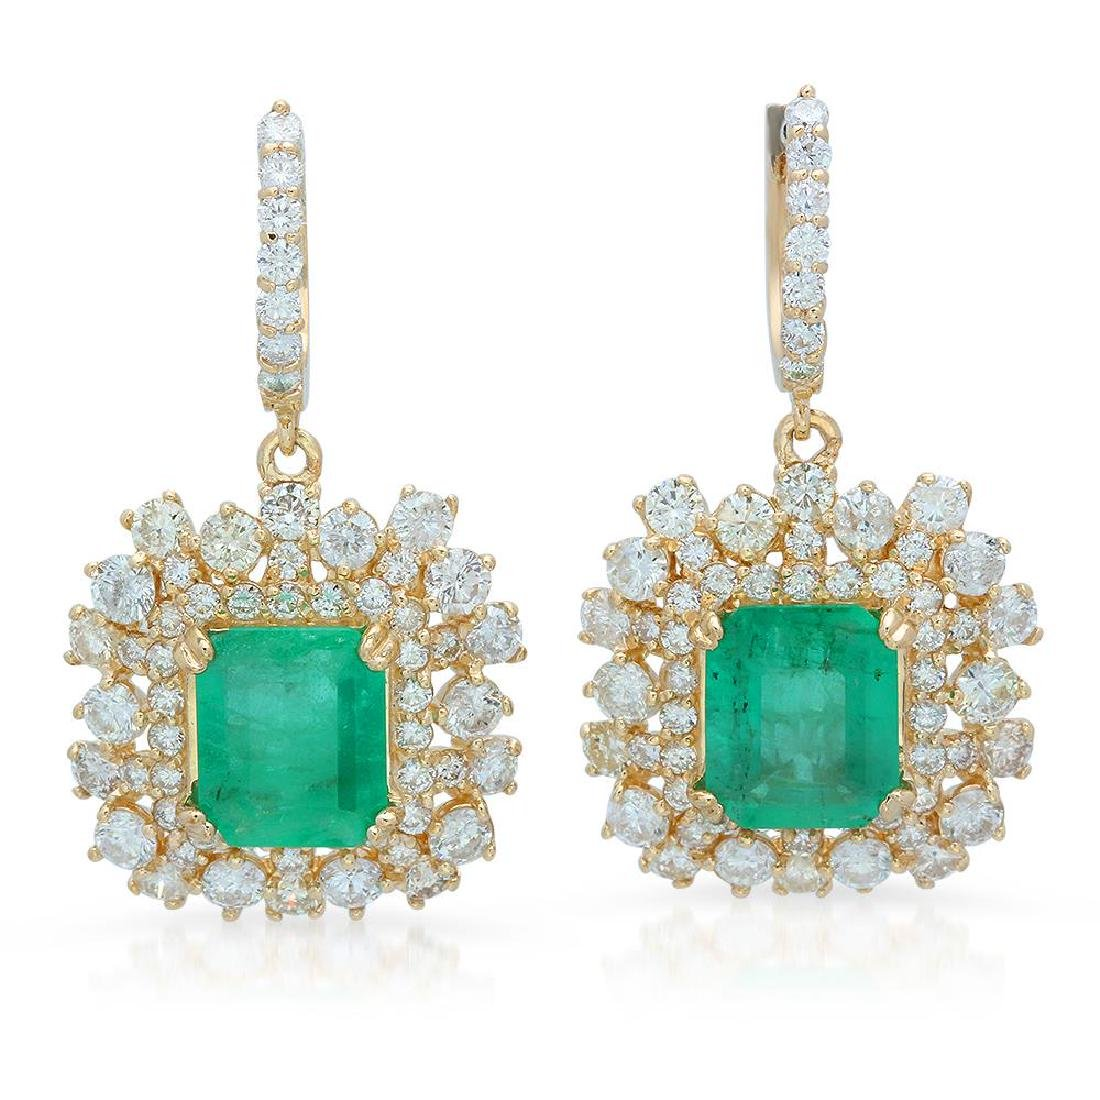 14K Gold 6.28ct Emerald 5.84ct Diamond Earrings